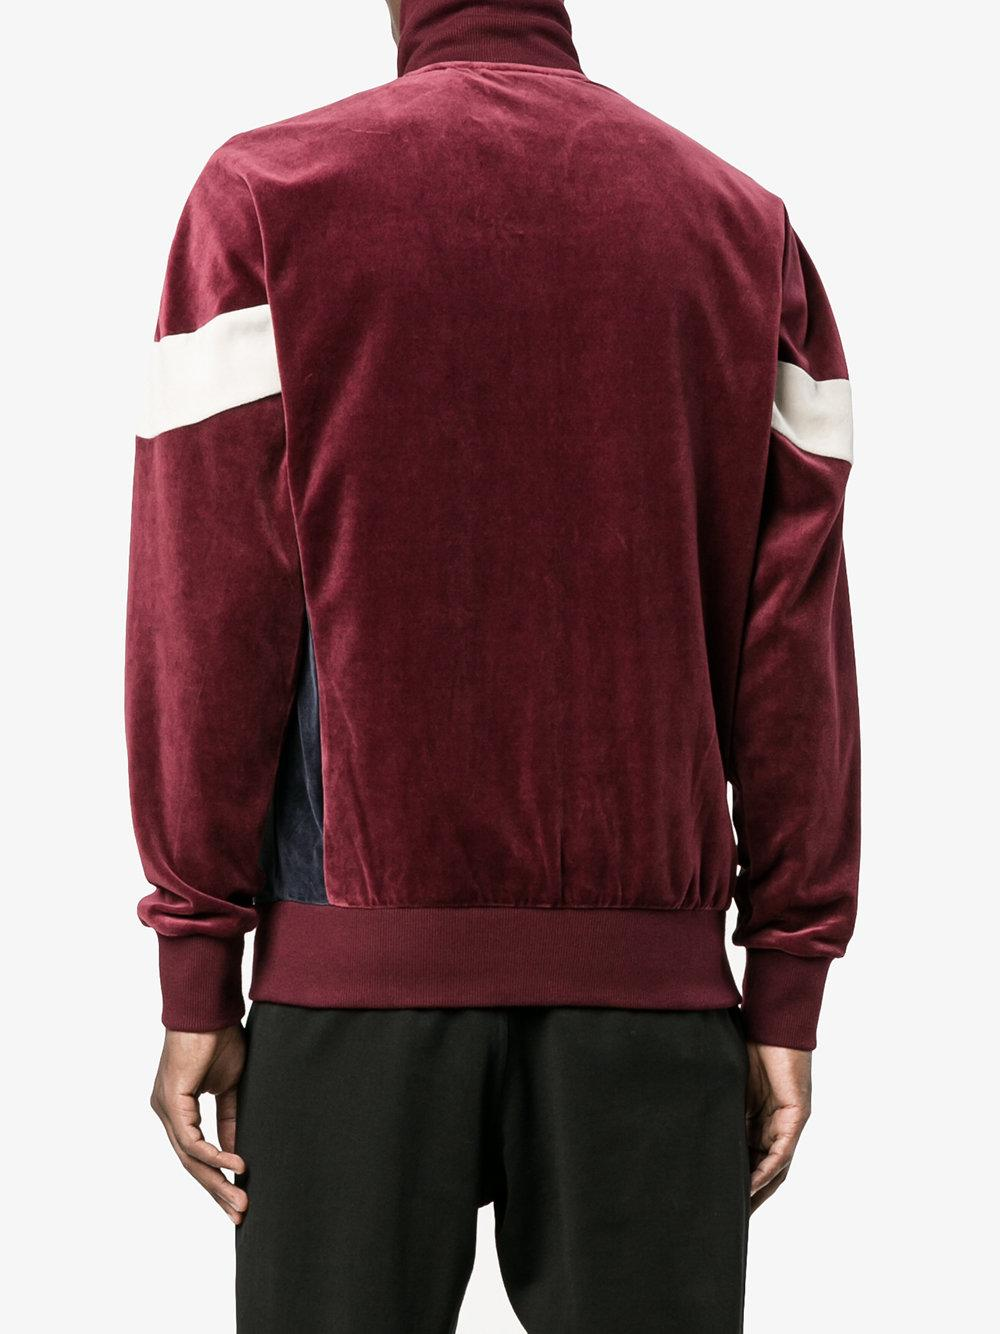 Adidas Cotton Clr84 Velour Track Jacket In Pink Amp Purple